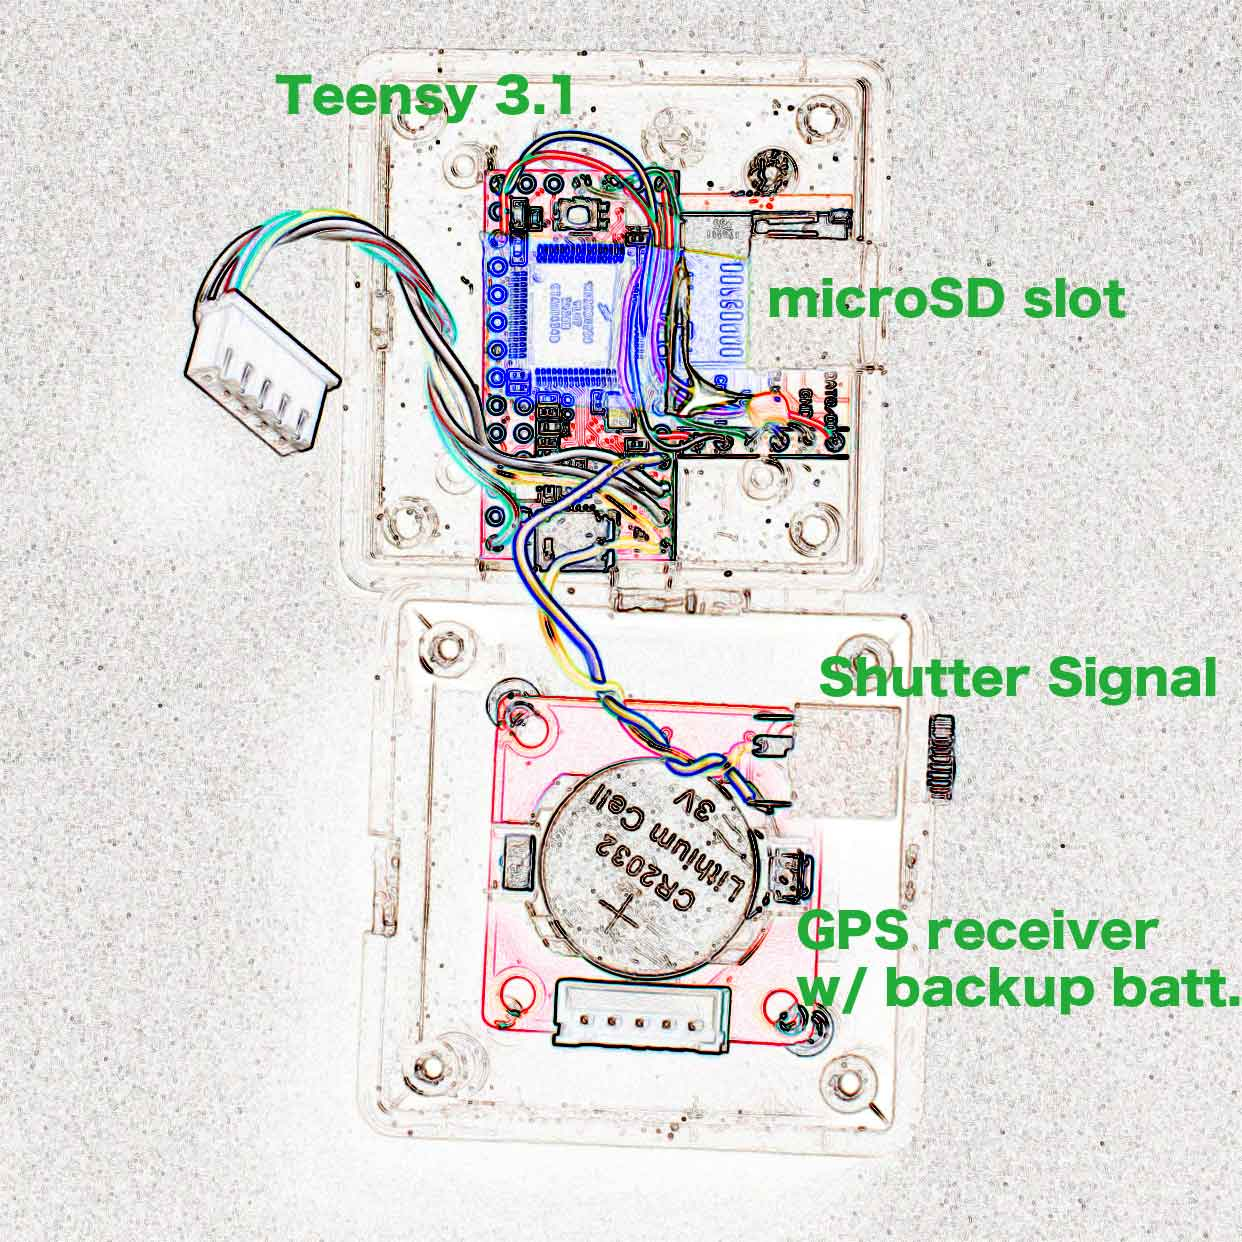 Gps Orangkucing Lab Genlock Wiring Diagram A Diy Stand Alone Unit For Watching Geofence Breach Is Made By Using Teensy 3 The General Purpose Device Which Has Similar Functionality Of Or